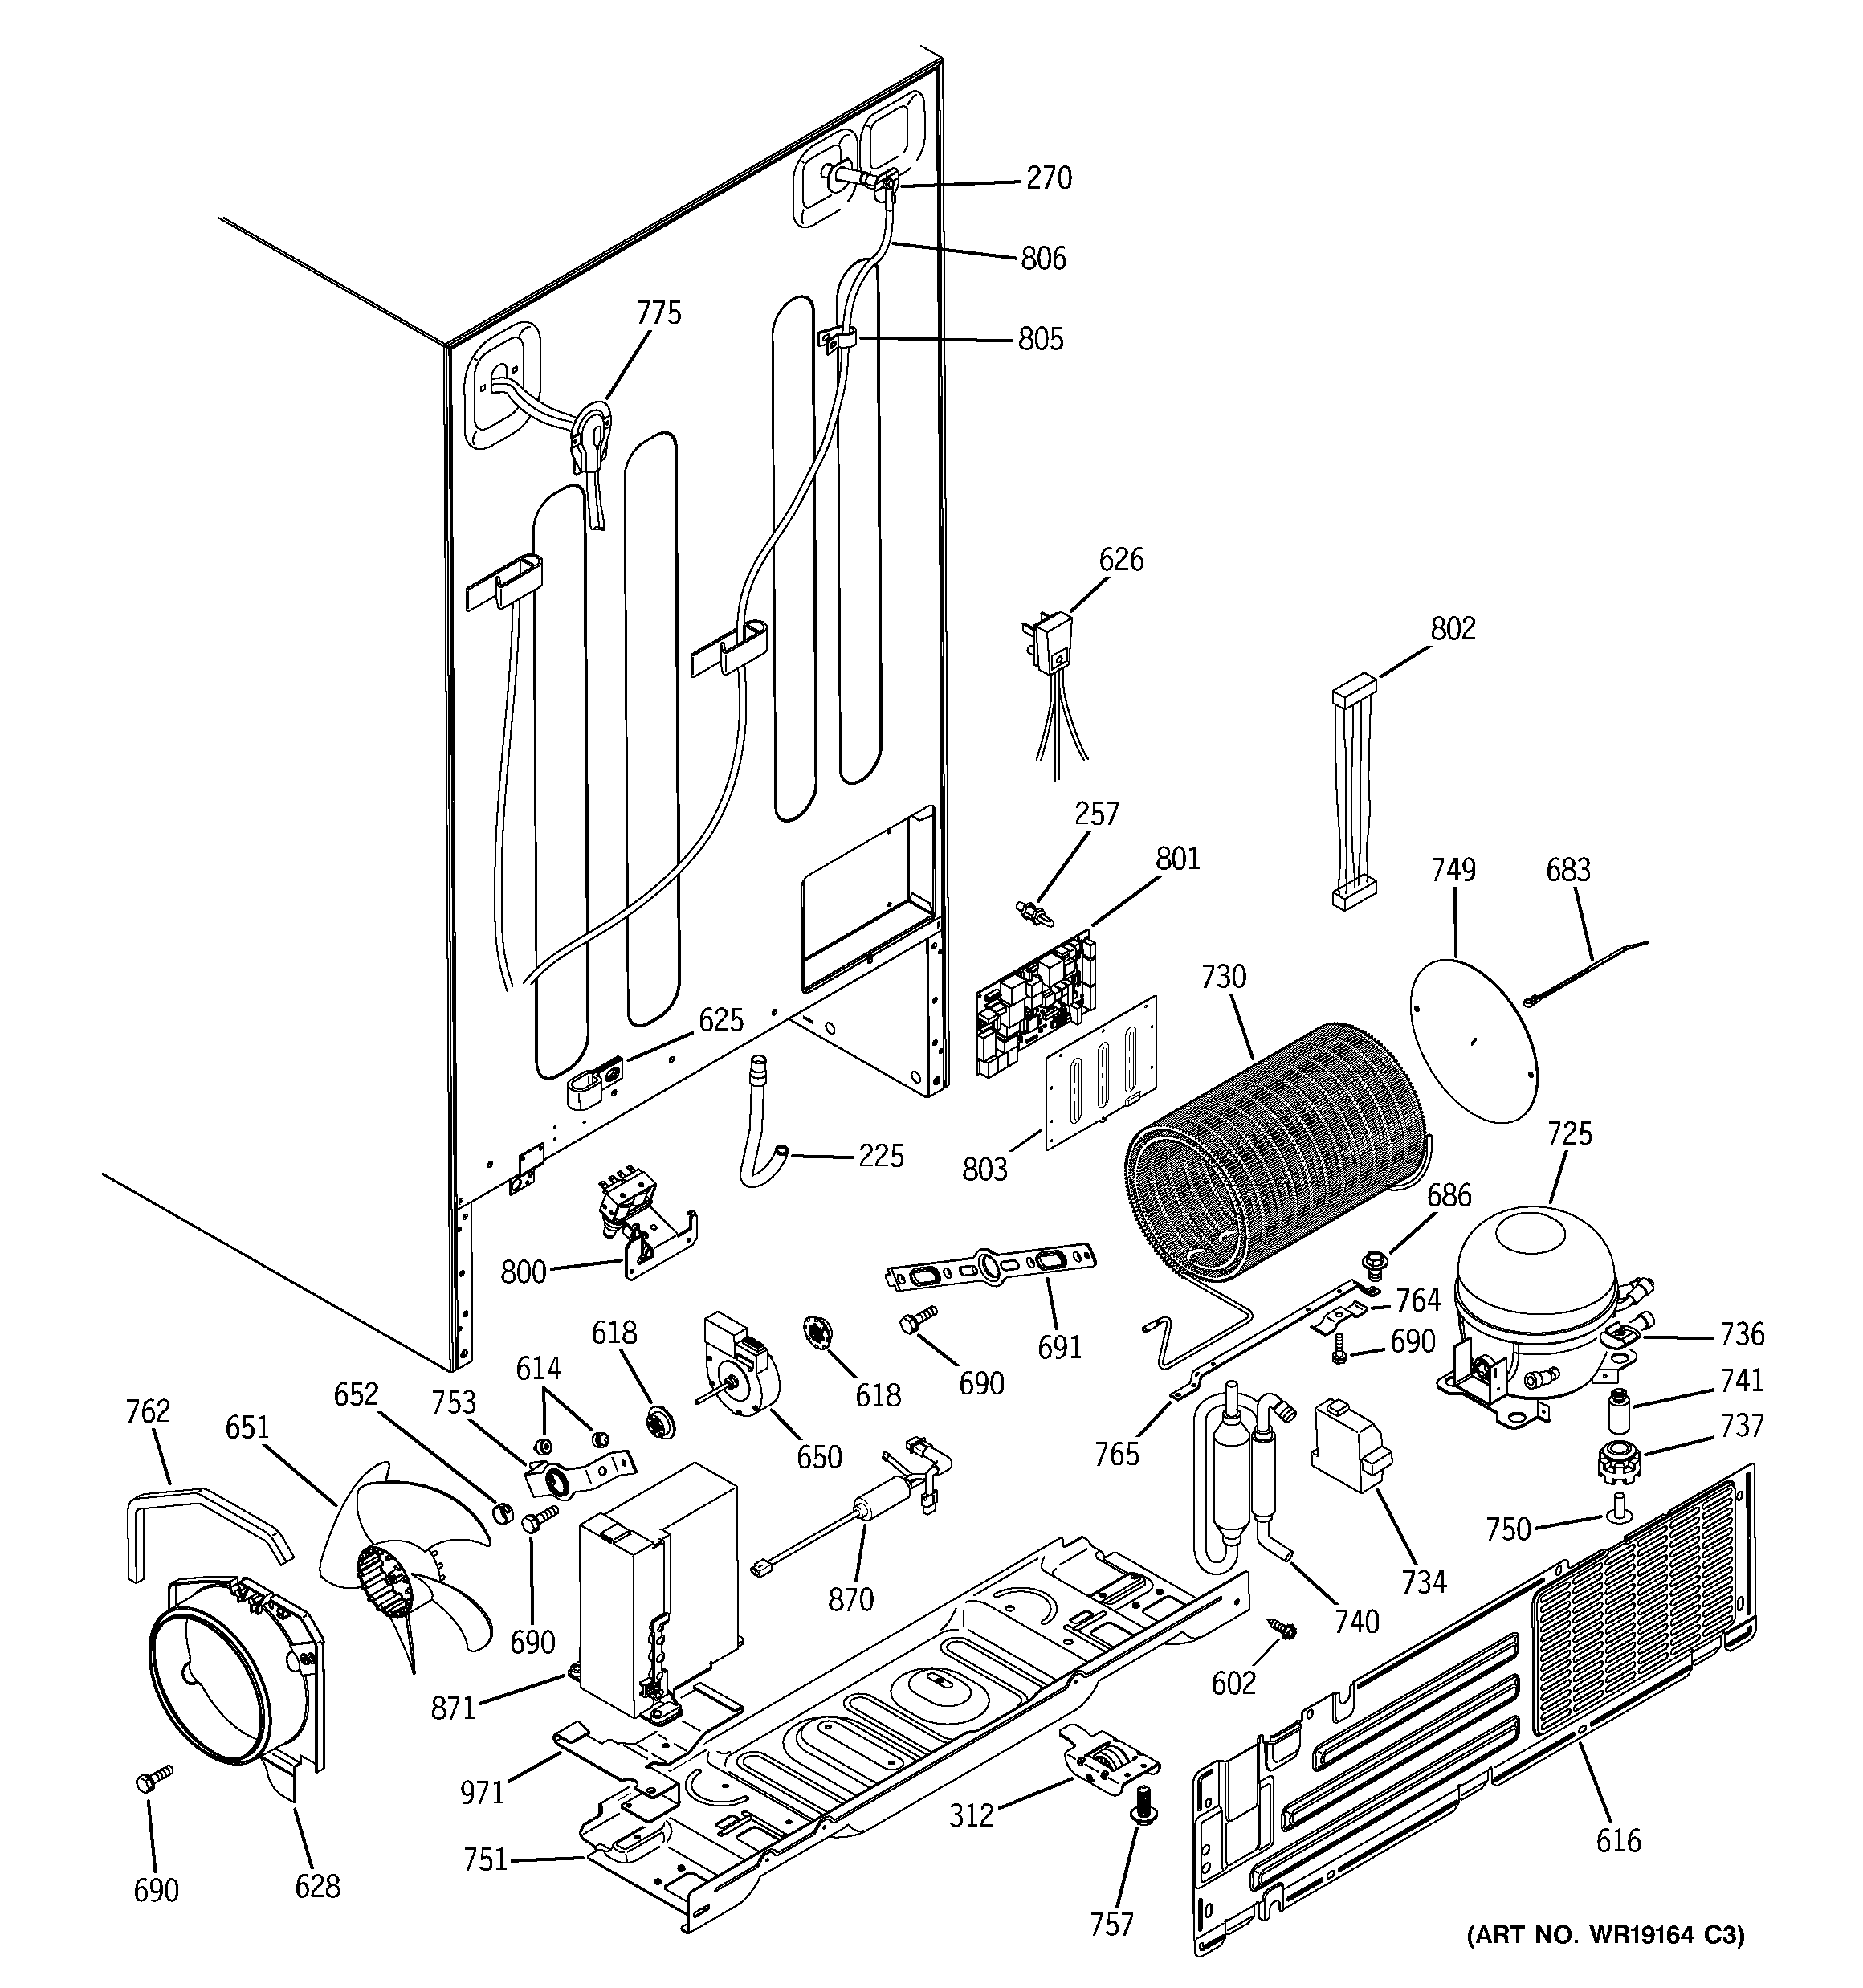 ge monogram refrigerator parts diagram range rover p38 air suspension wiring sealed system and mother board list for